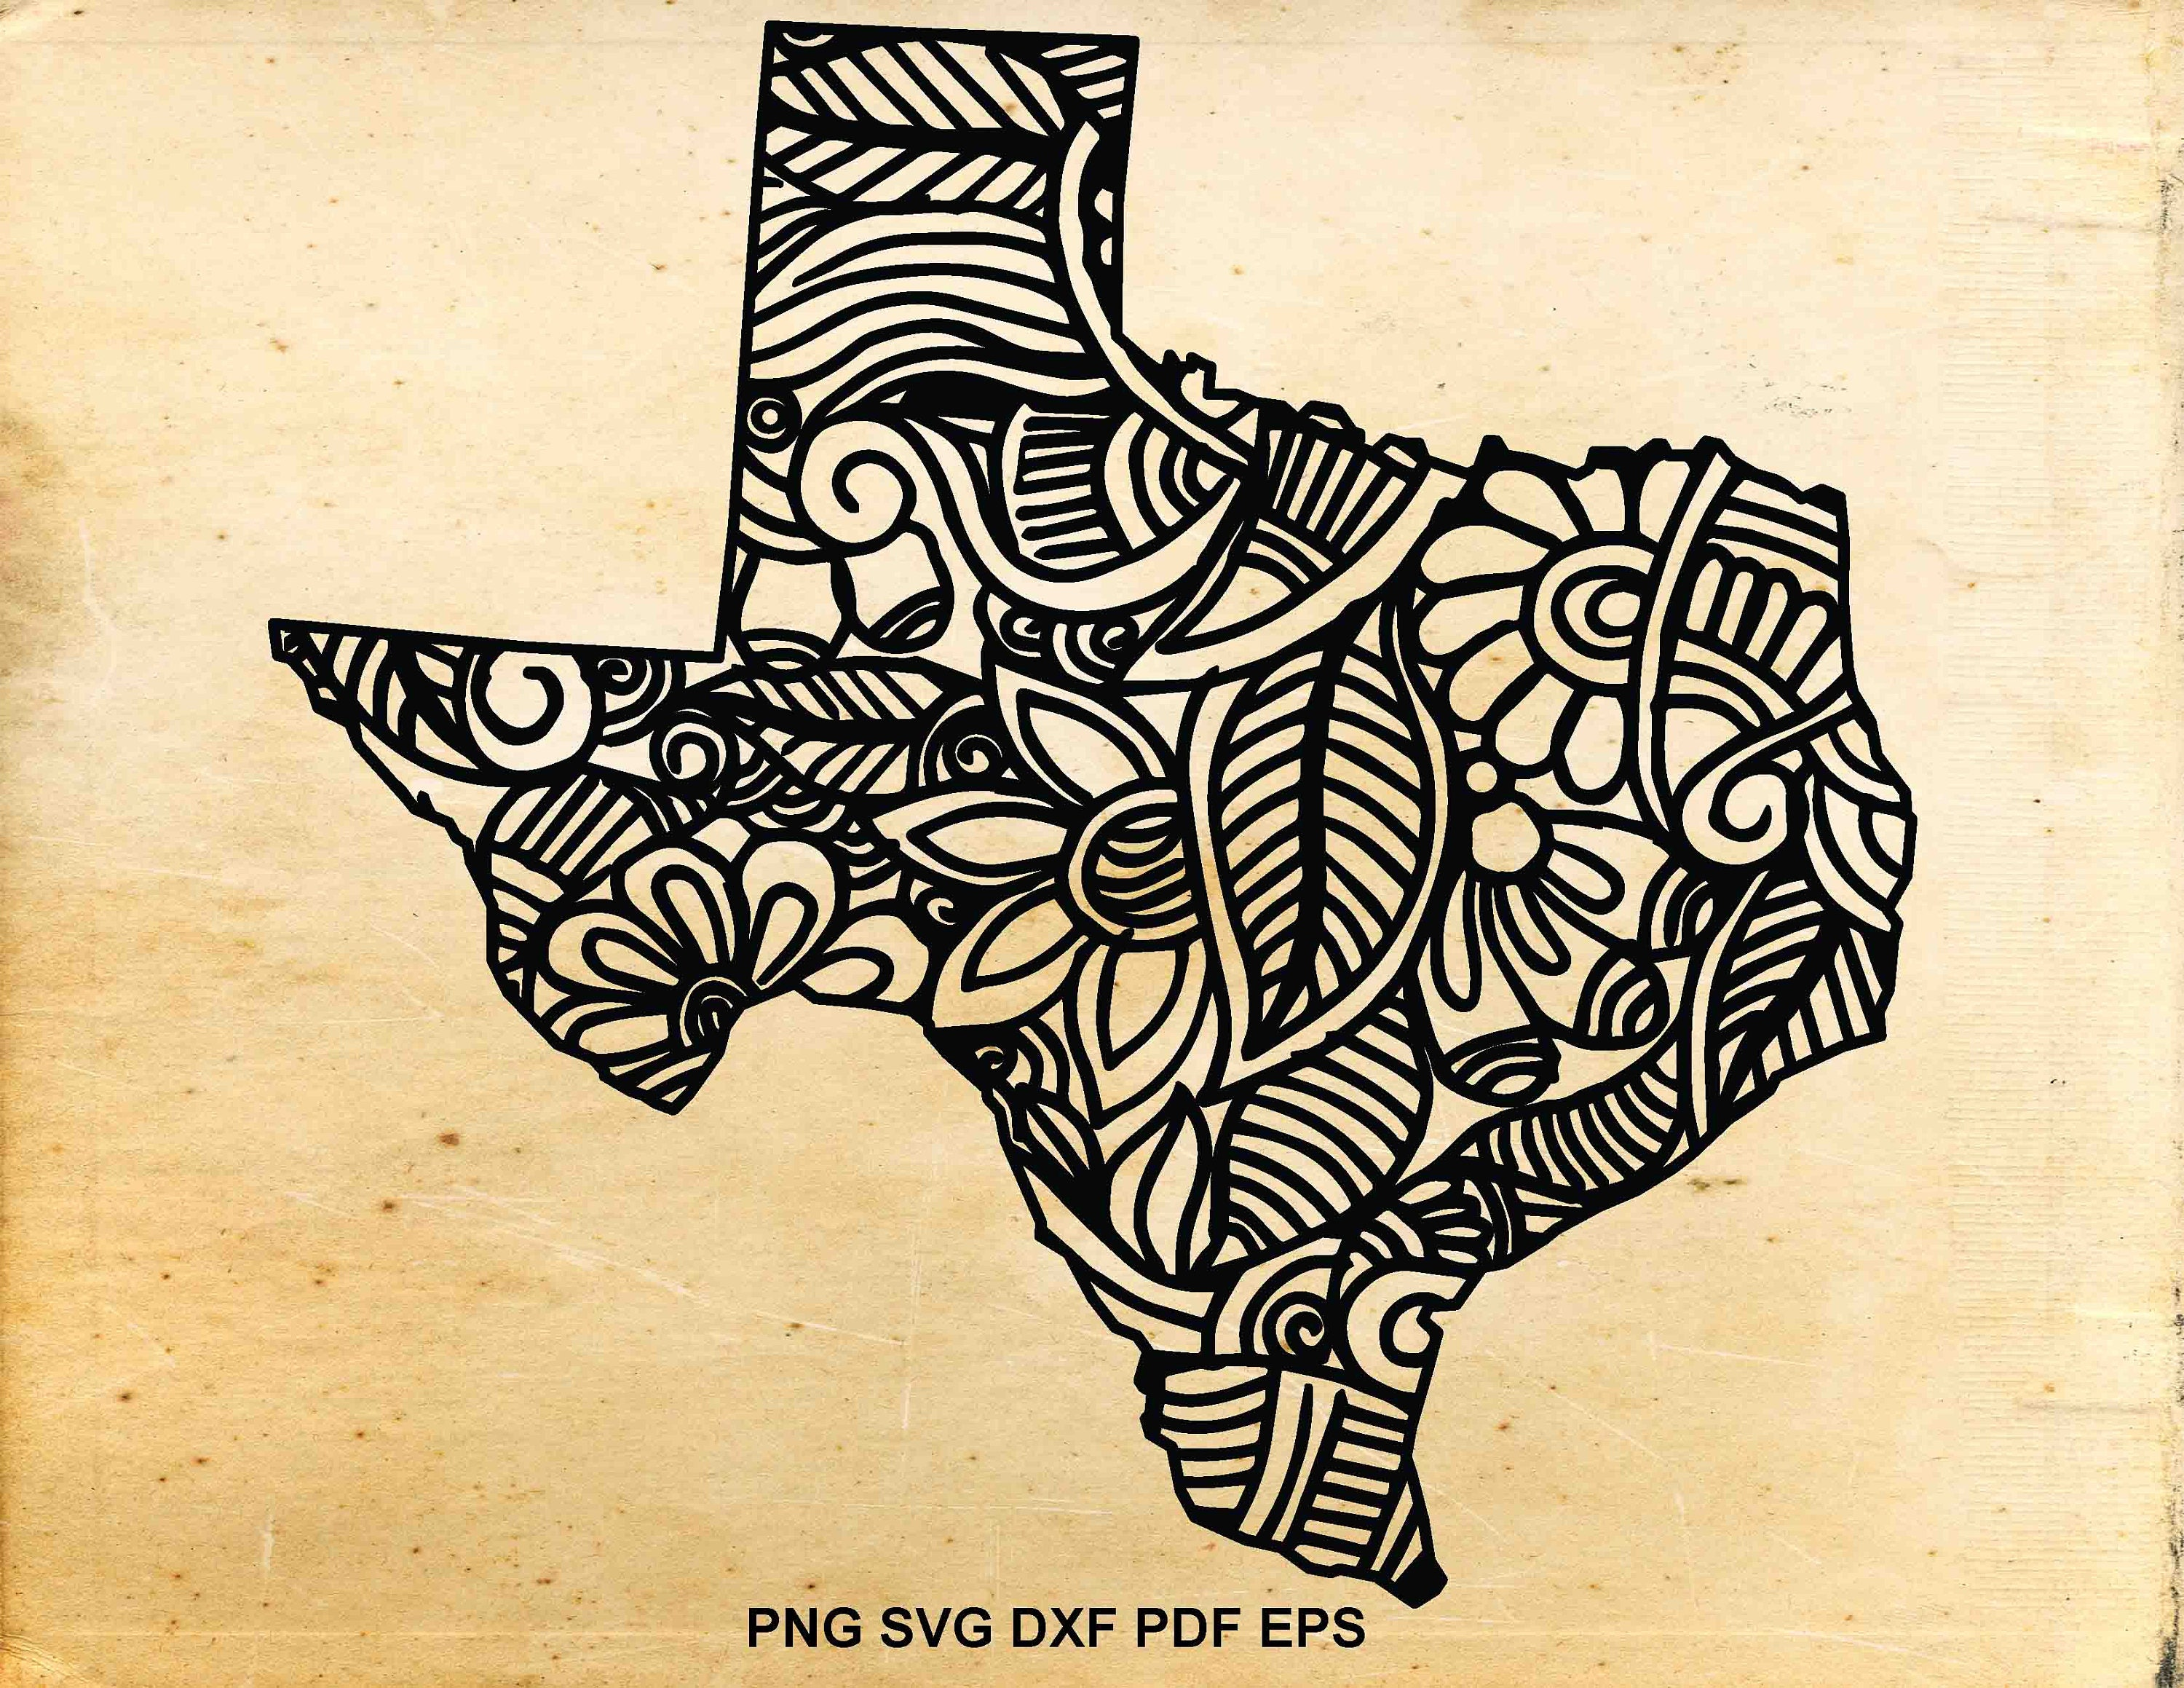 Texas state svg, Zentangle svg, Iron on designs, Doodle art, Decal design,  Cut files for Cricut, Files for Silhouette Cameo, Print design